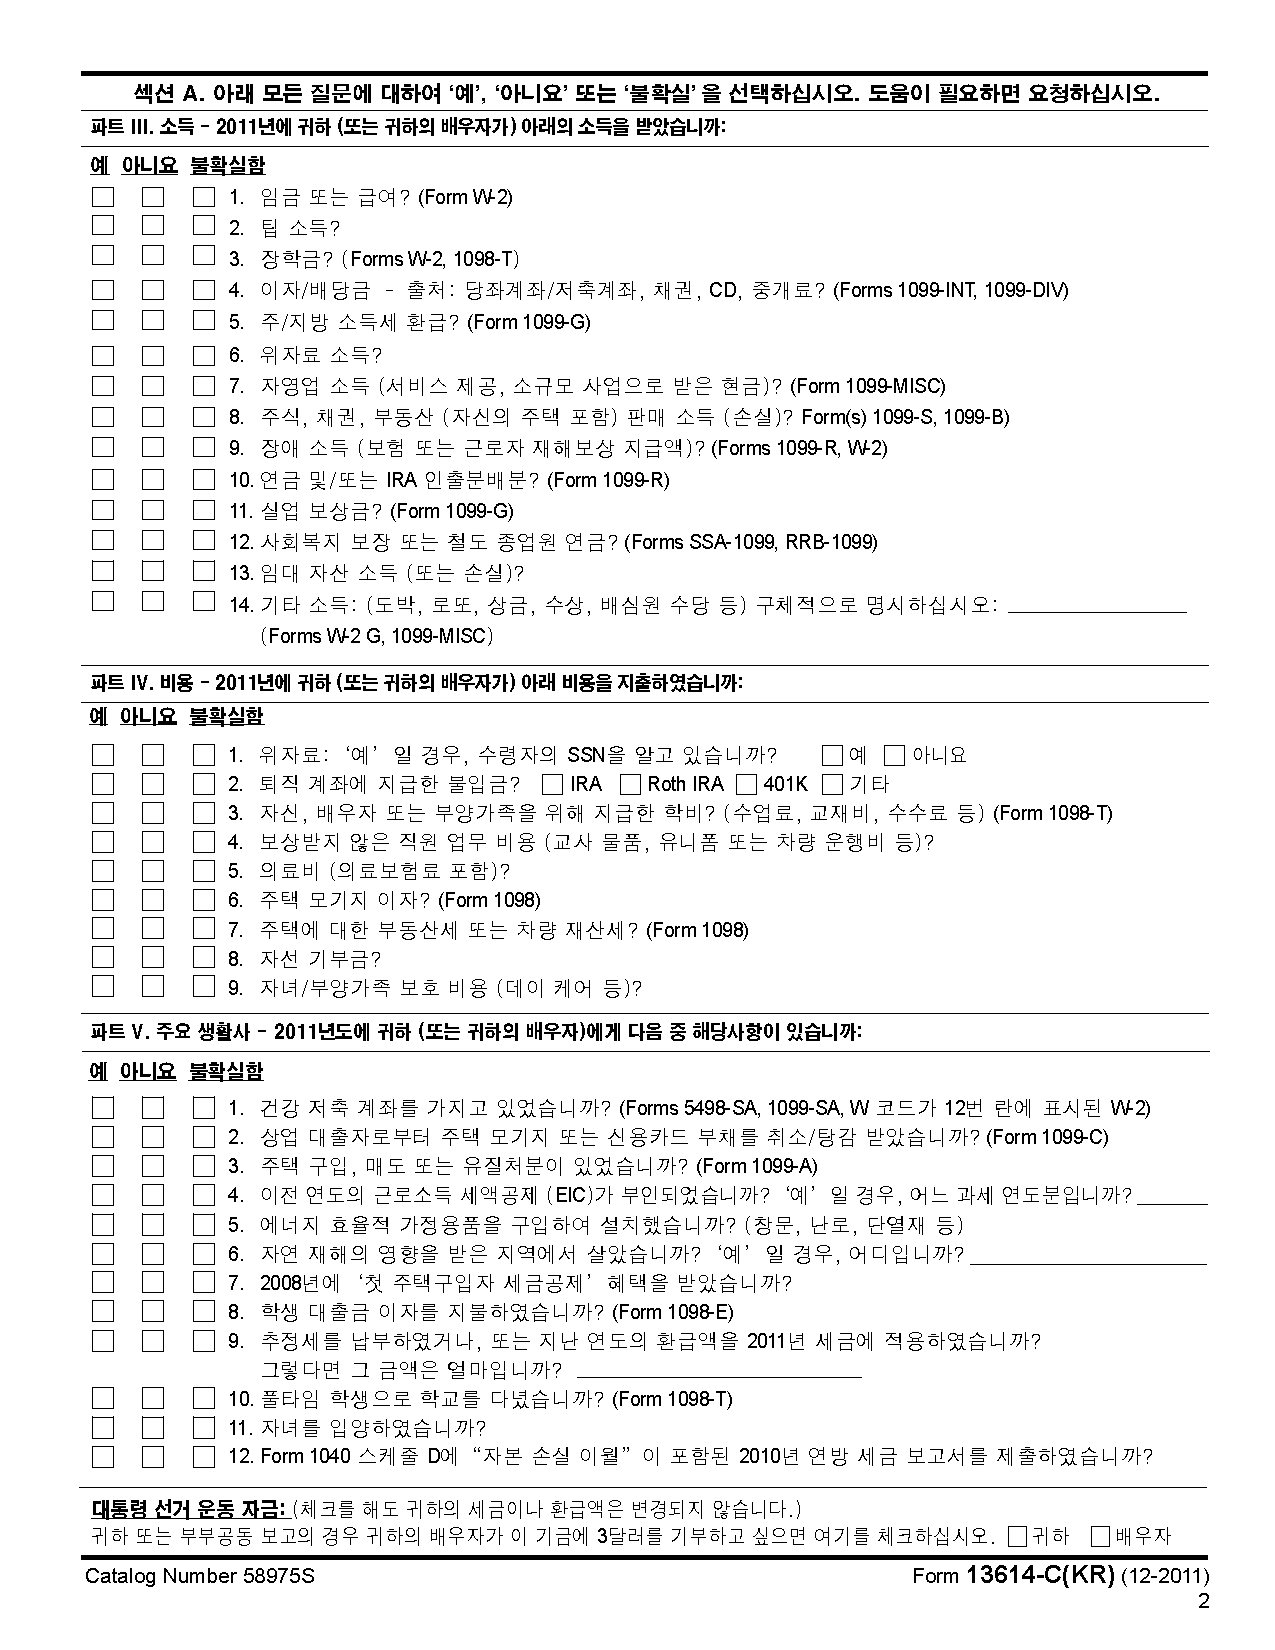 Form C Kr Intake Interview Amp Quality Review Sheet